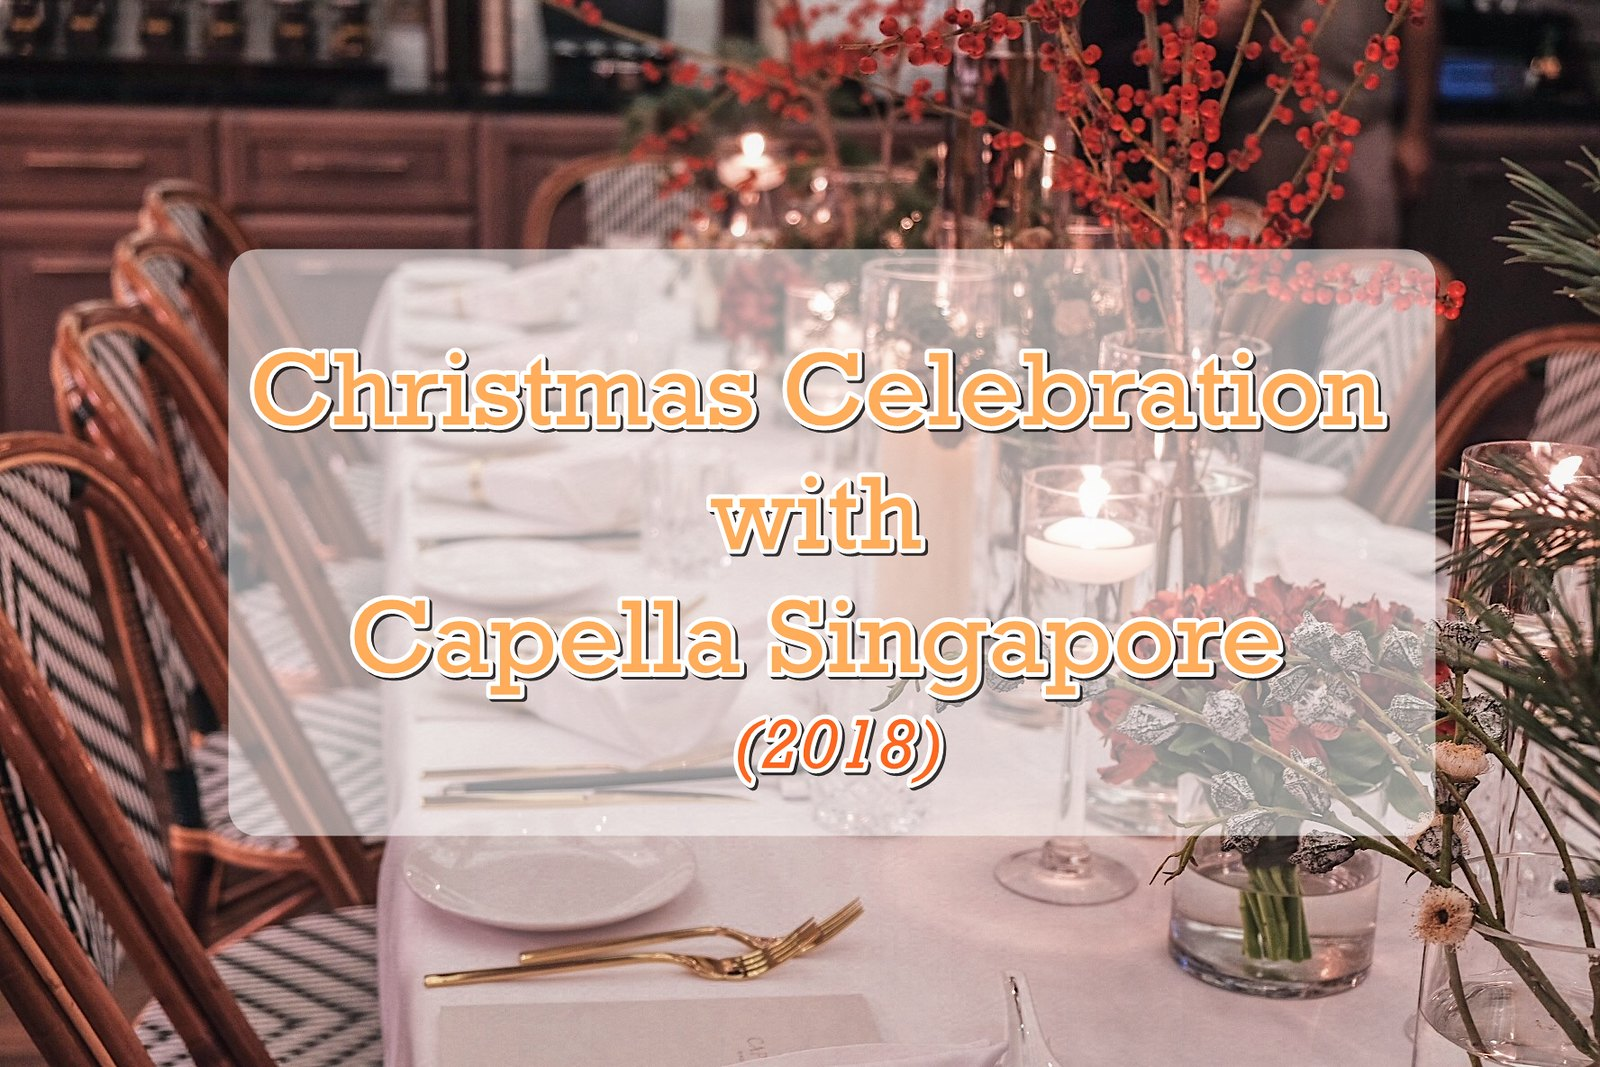 [SG EATS] 2018 Christmas Highlights At Capella Singapore- Season of Joy